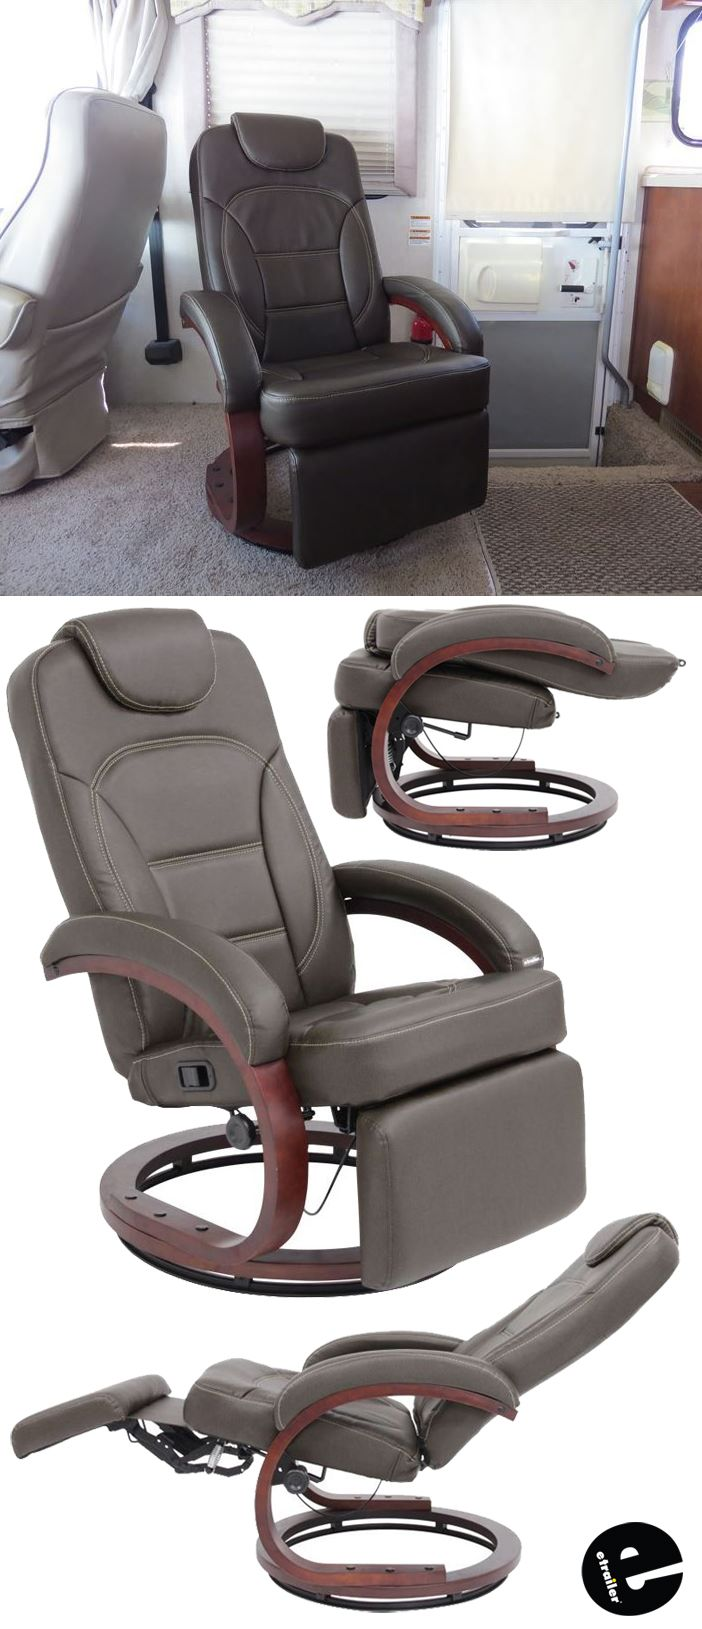 Rv Chairs Recliners >> Thomas Payne Euro Rv Recliner Chair W Footrest 20 Seat Width